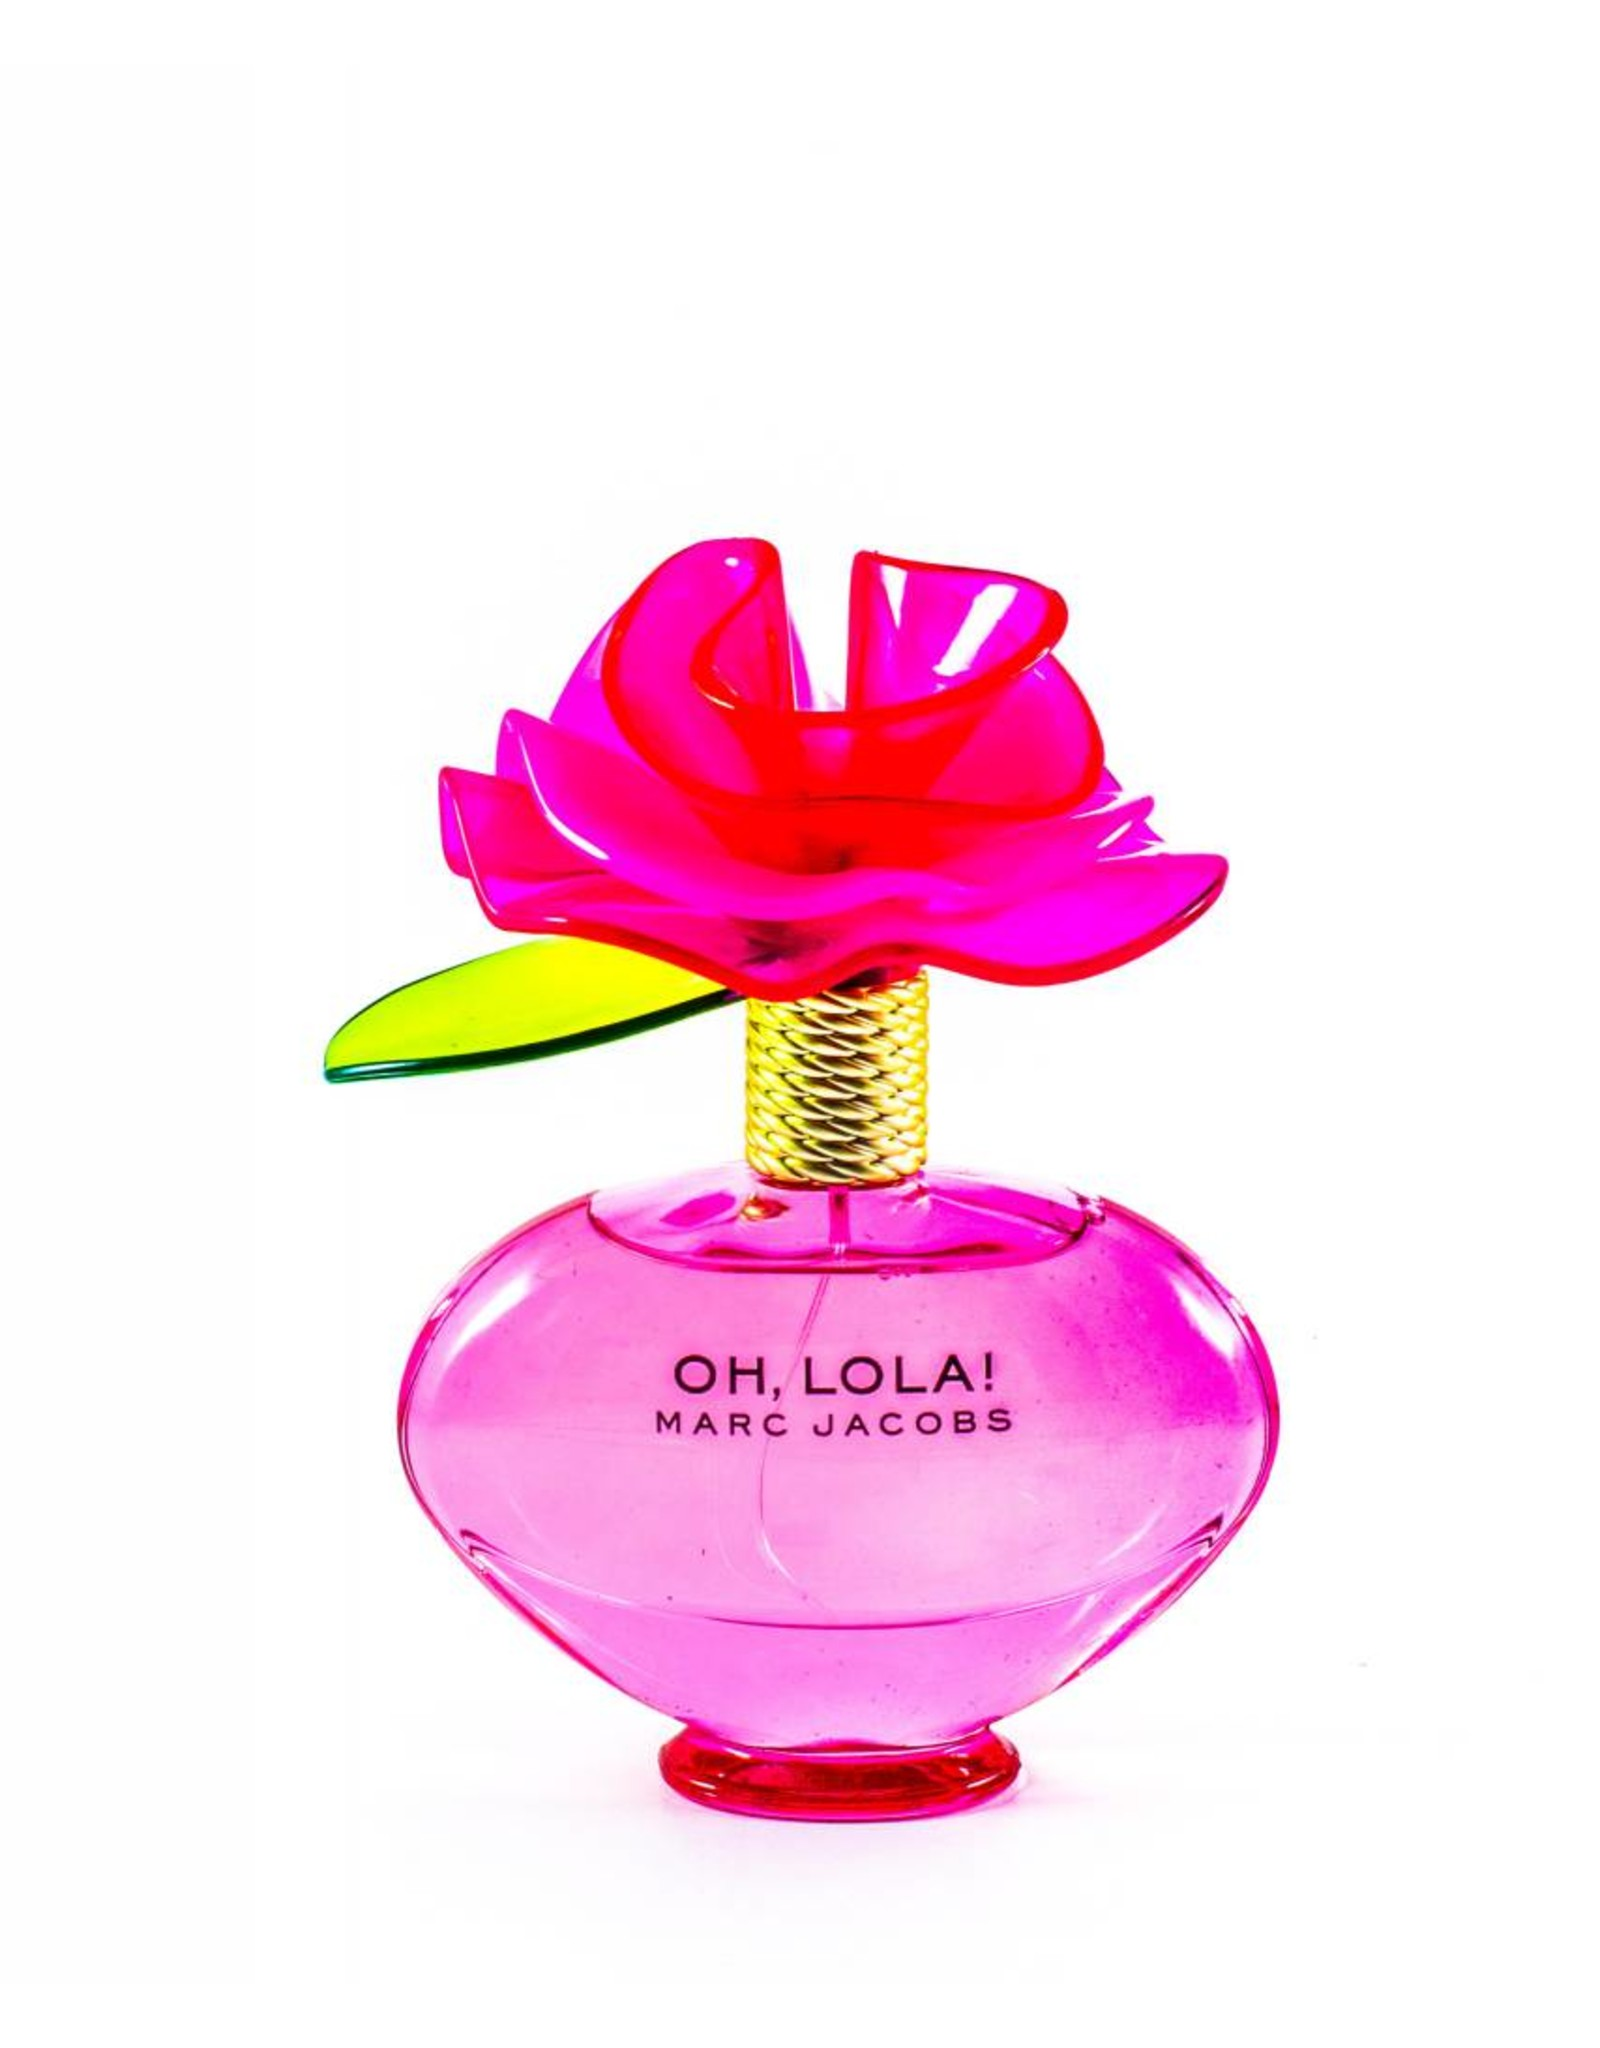 MARC JACOBS MARC JACOBS OH LOLA